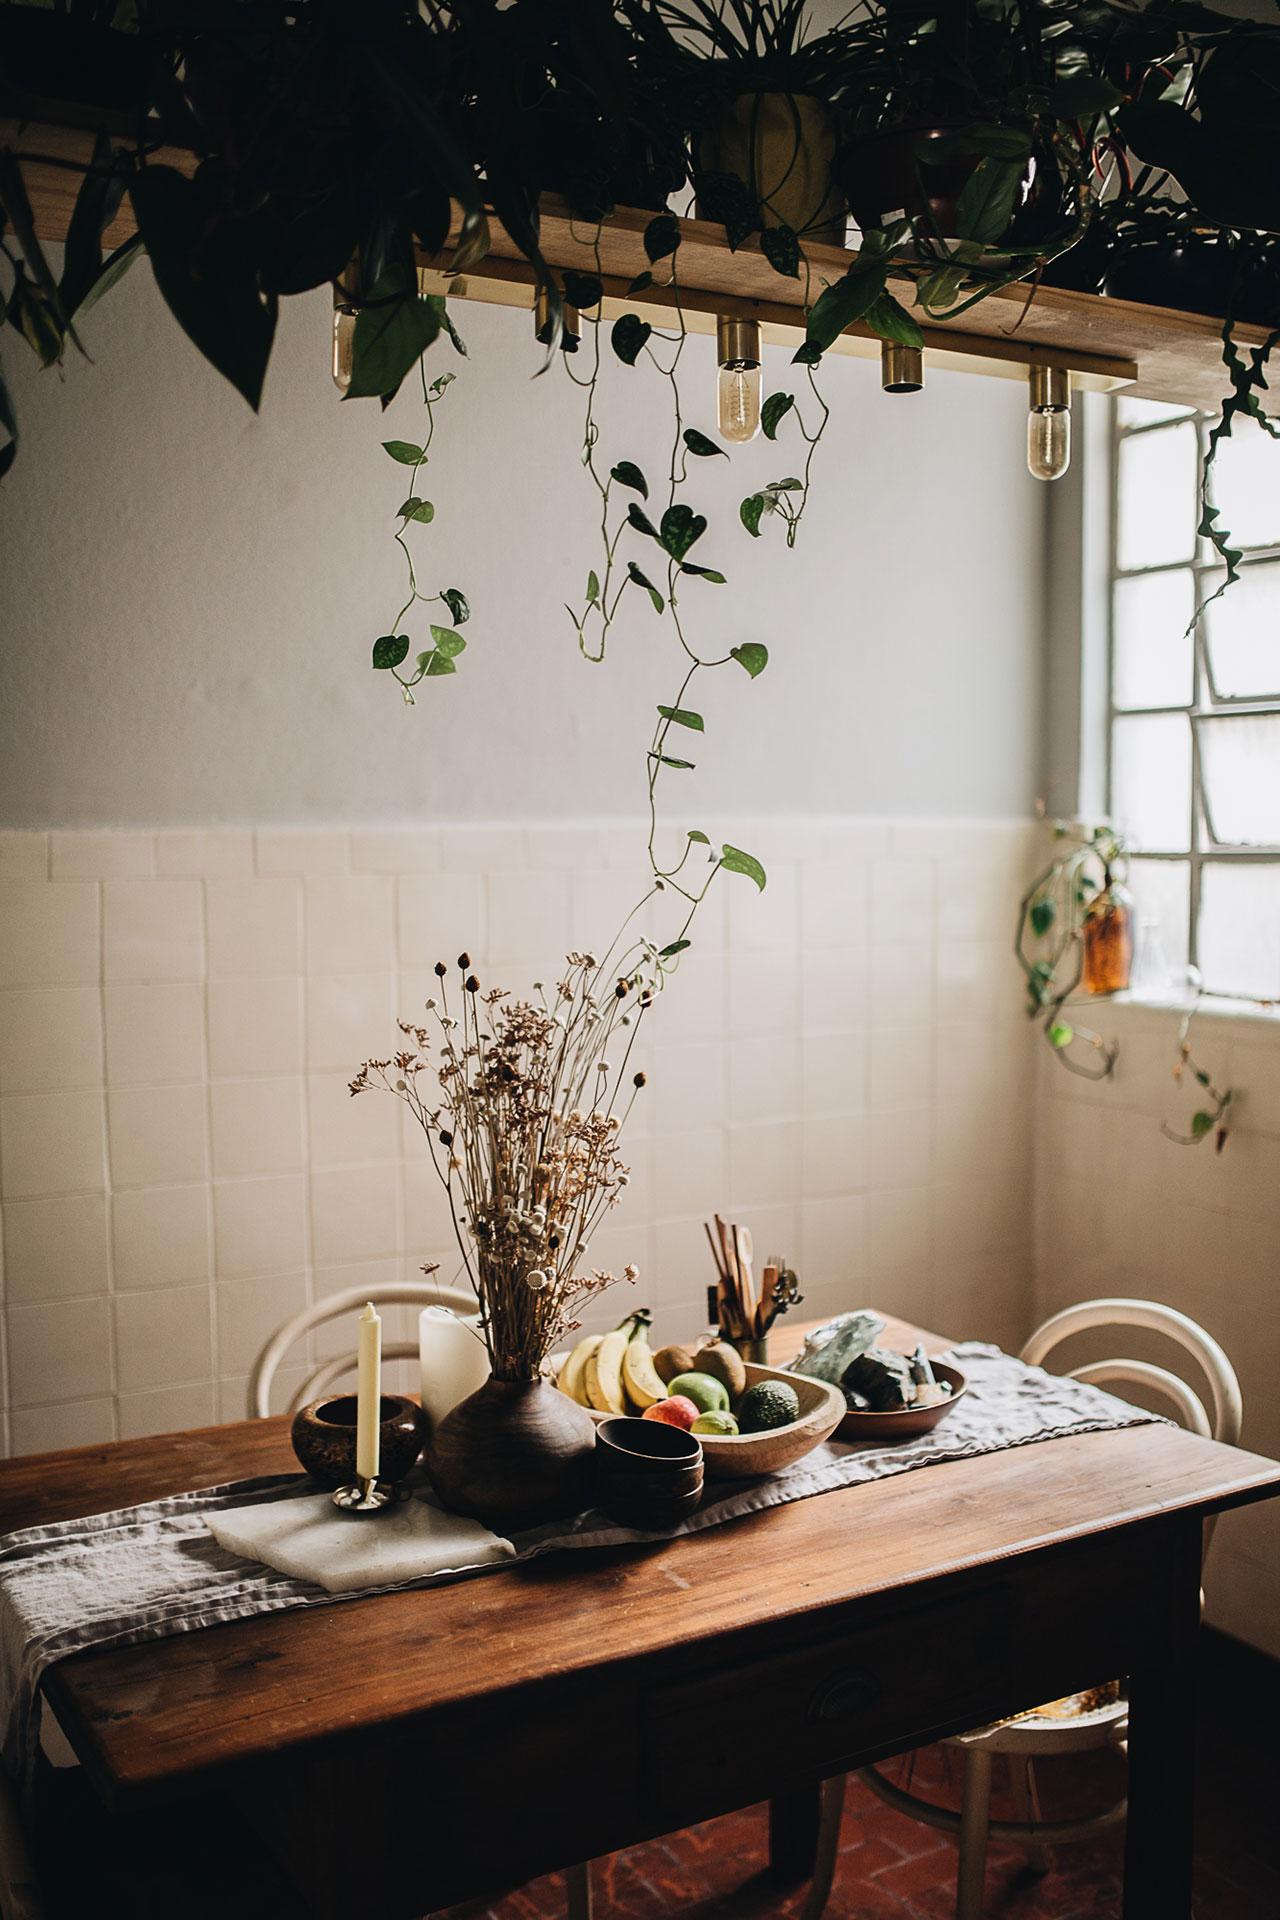 PLANT TRIBELIVING HAPPILY EVER AFTER WITH PLANTSBy Igor Josifovic & Judith de Graaff Photo: The home ofDerek Fernandes in São Paulo, Brazil.Photography by Jules Villbrandt.